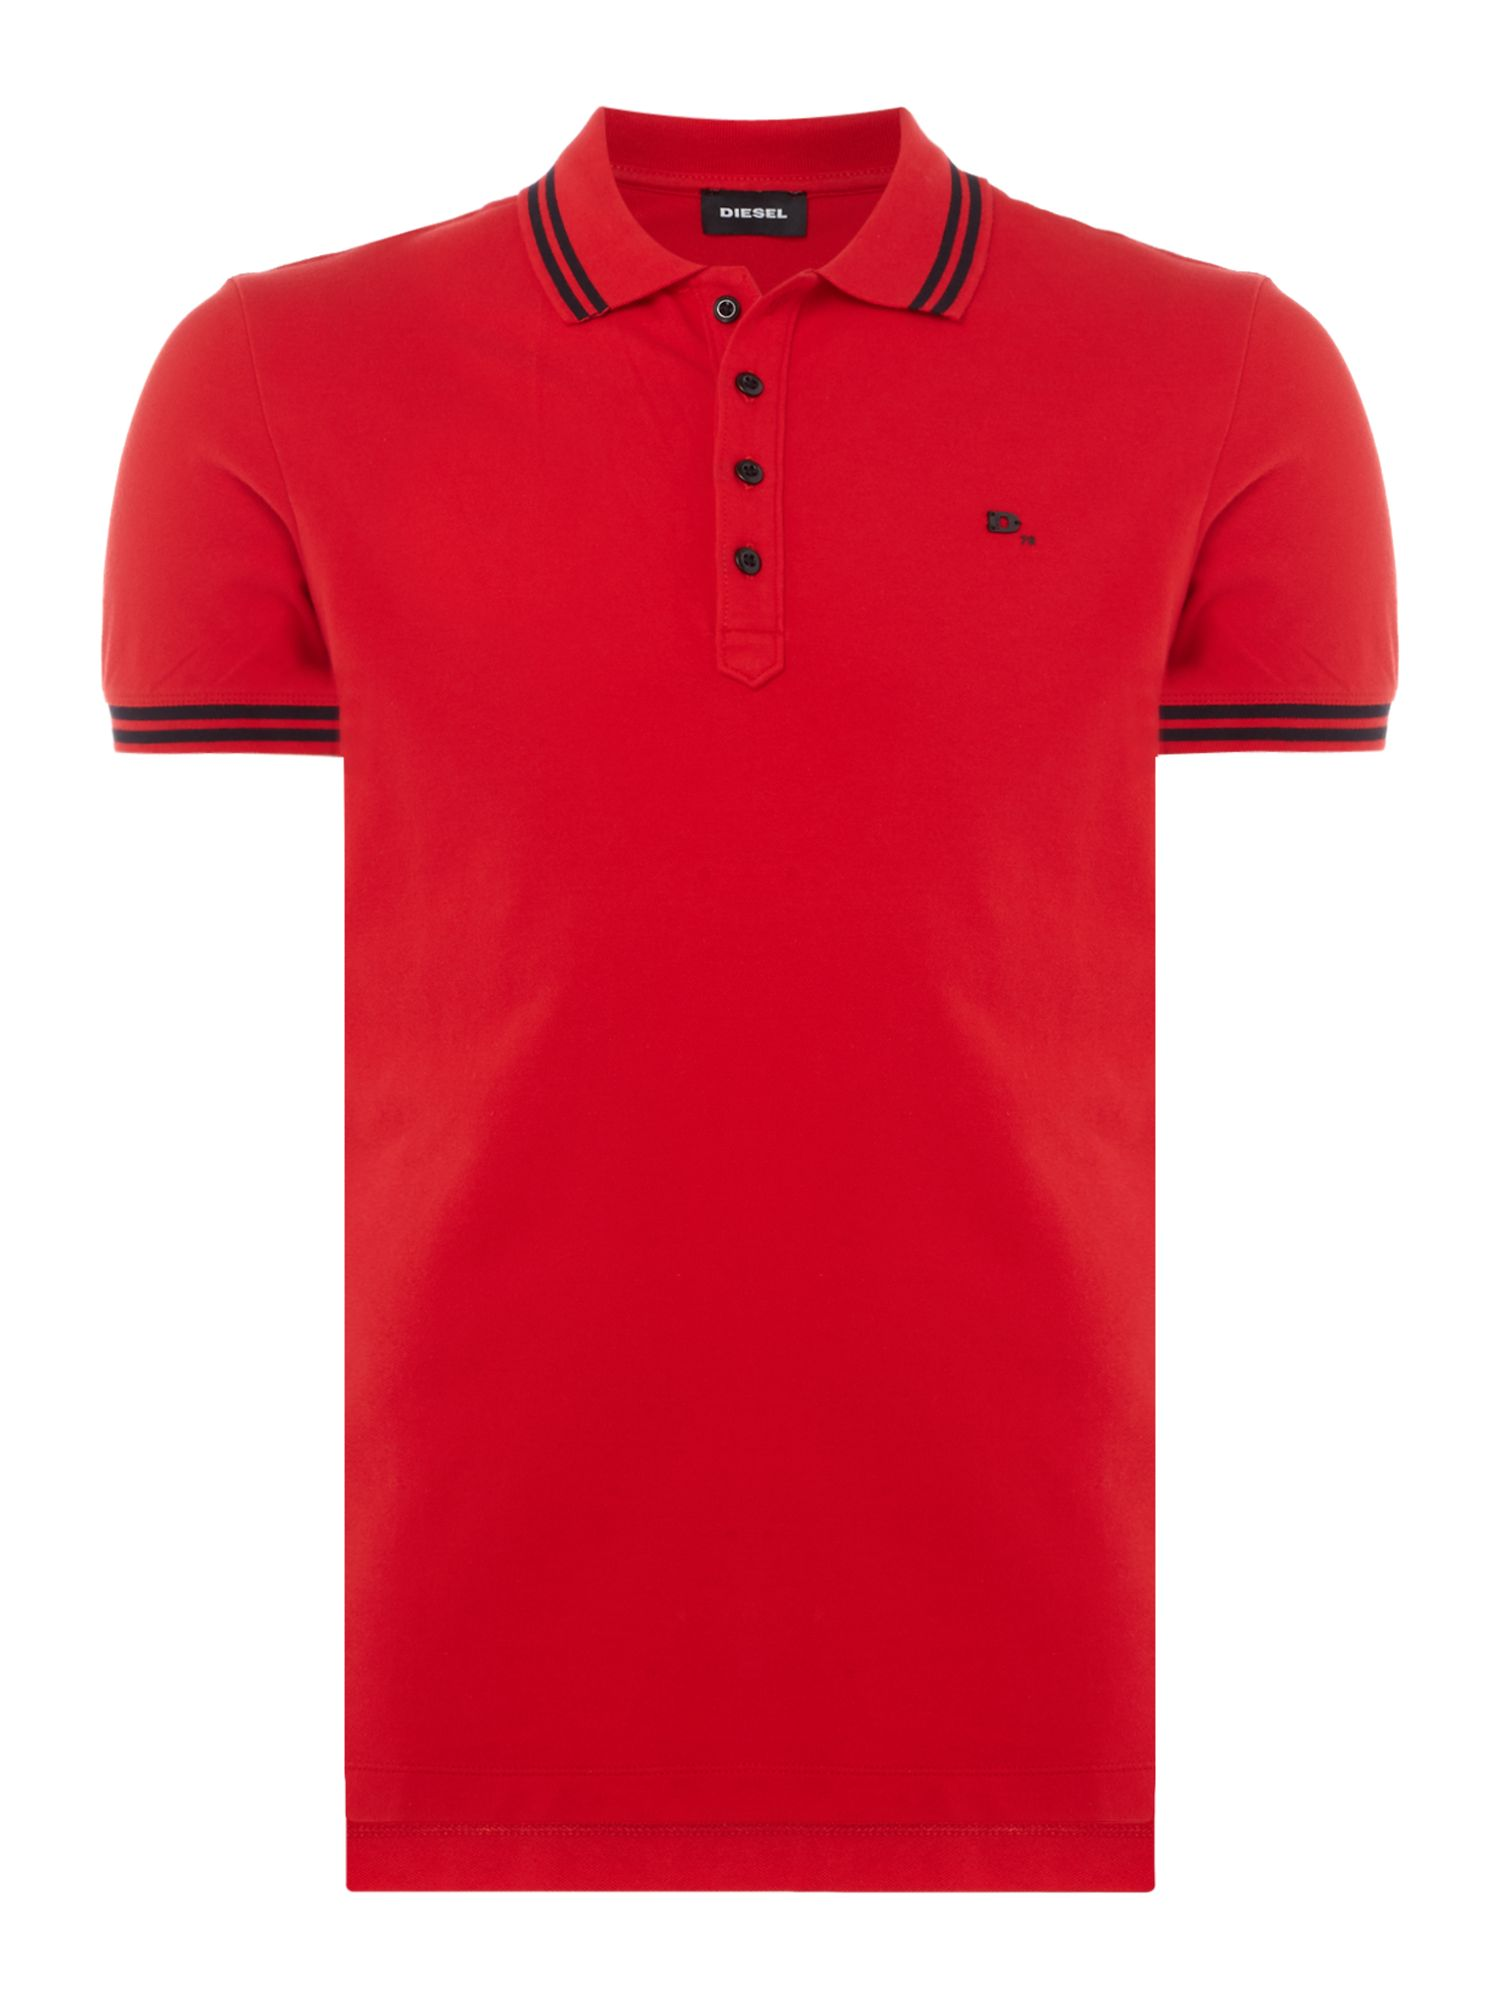 Men's Diesel Tipped Collar Logo Polo, Red